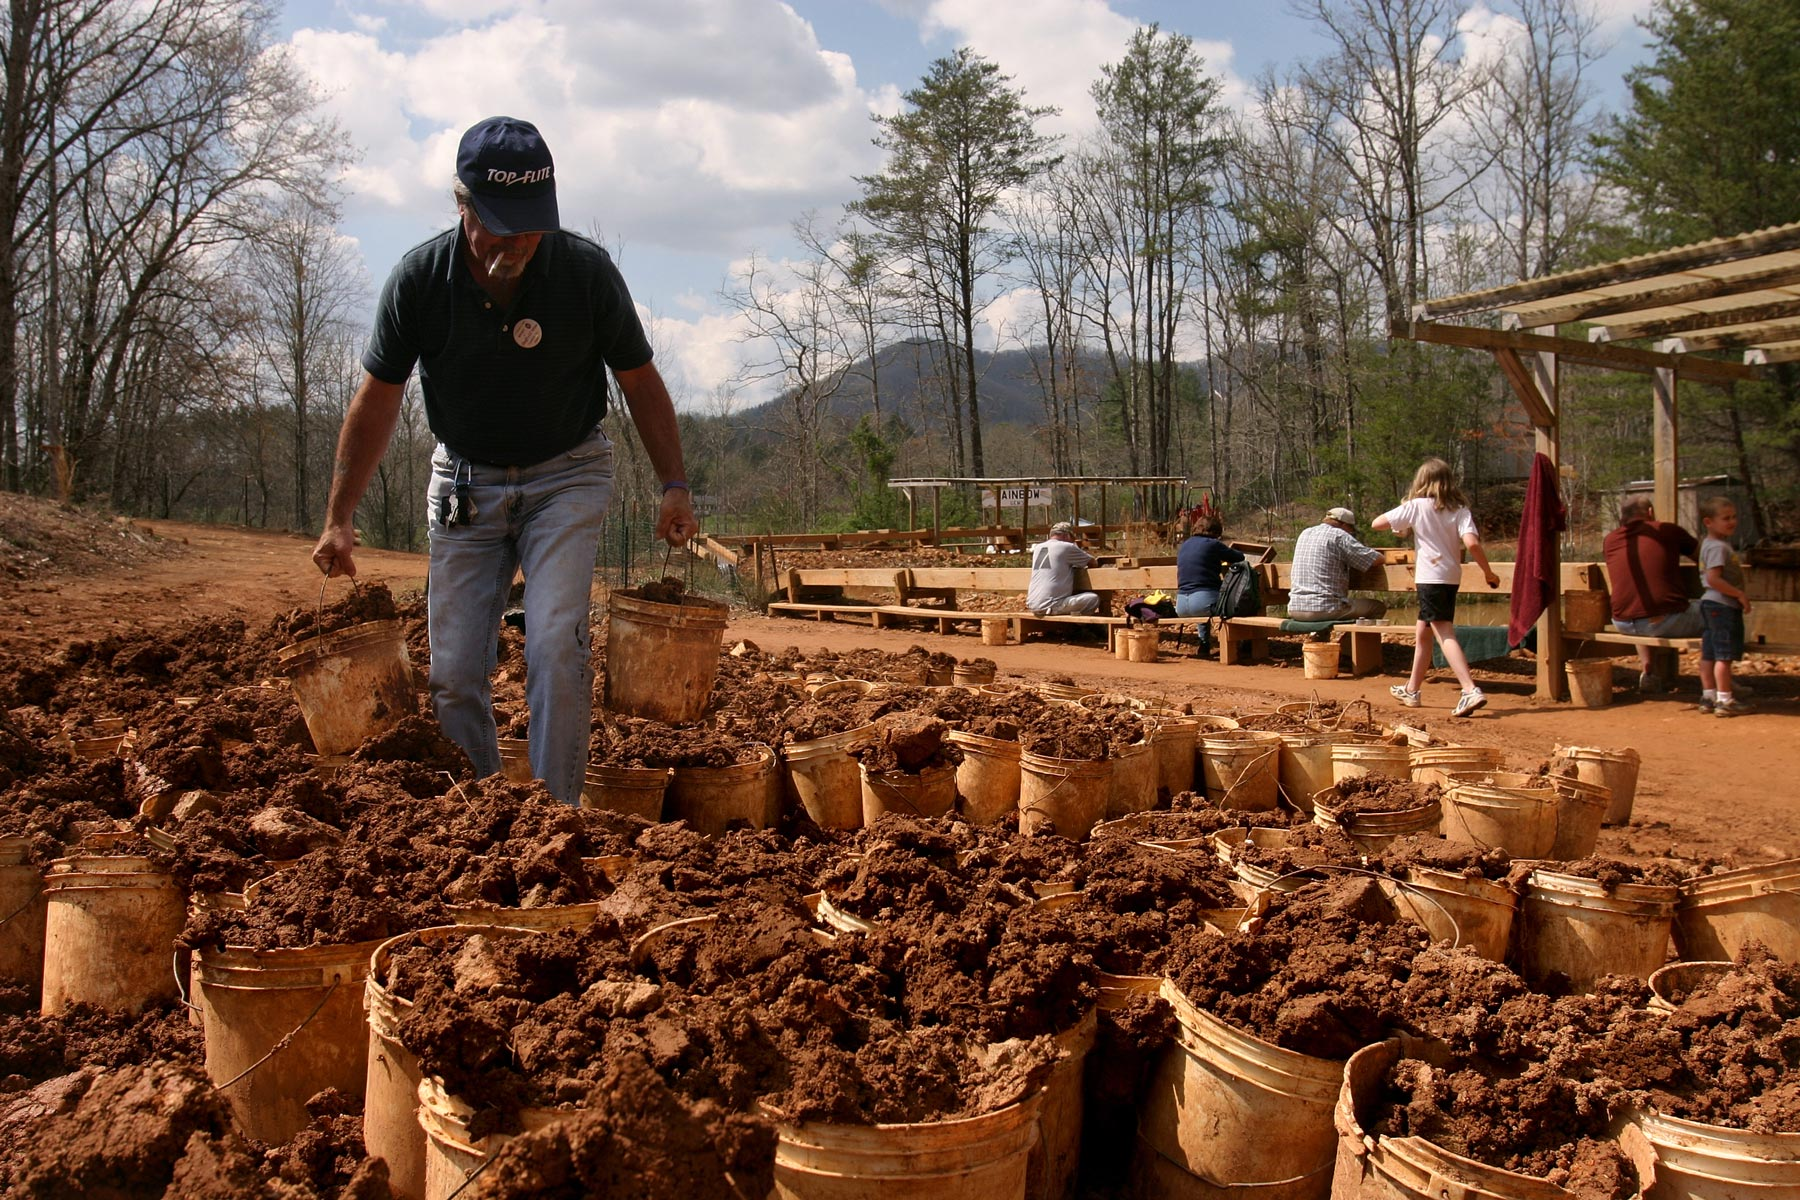 Man holding a bucket of dirt walks through a collection of similar buckets